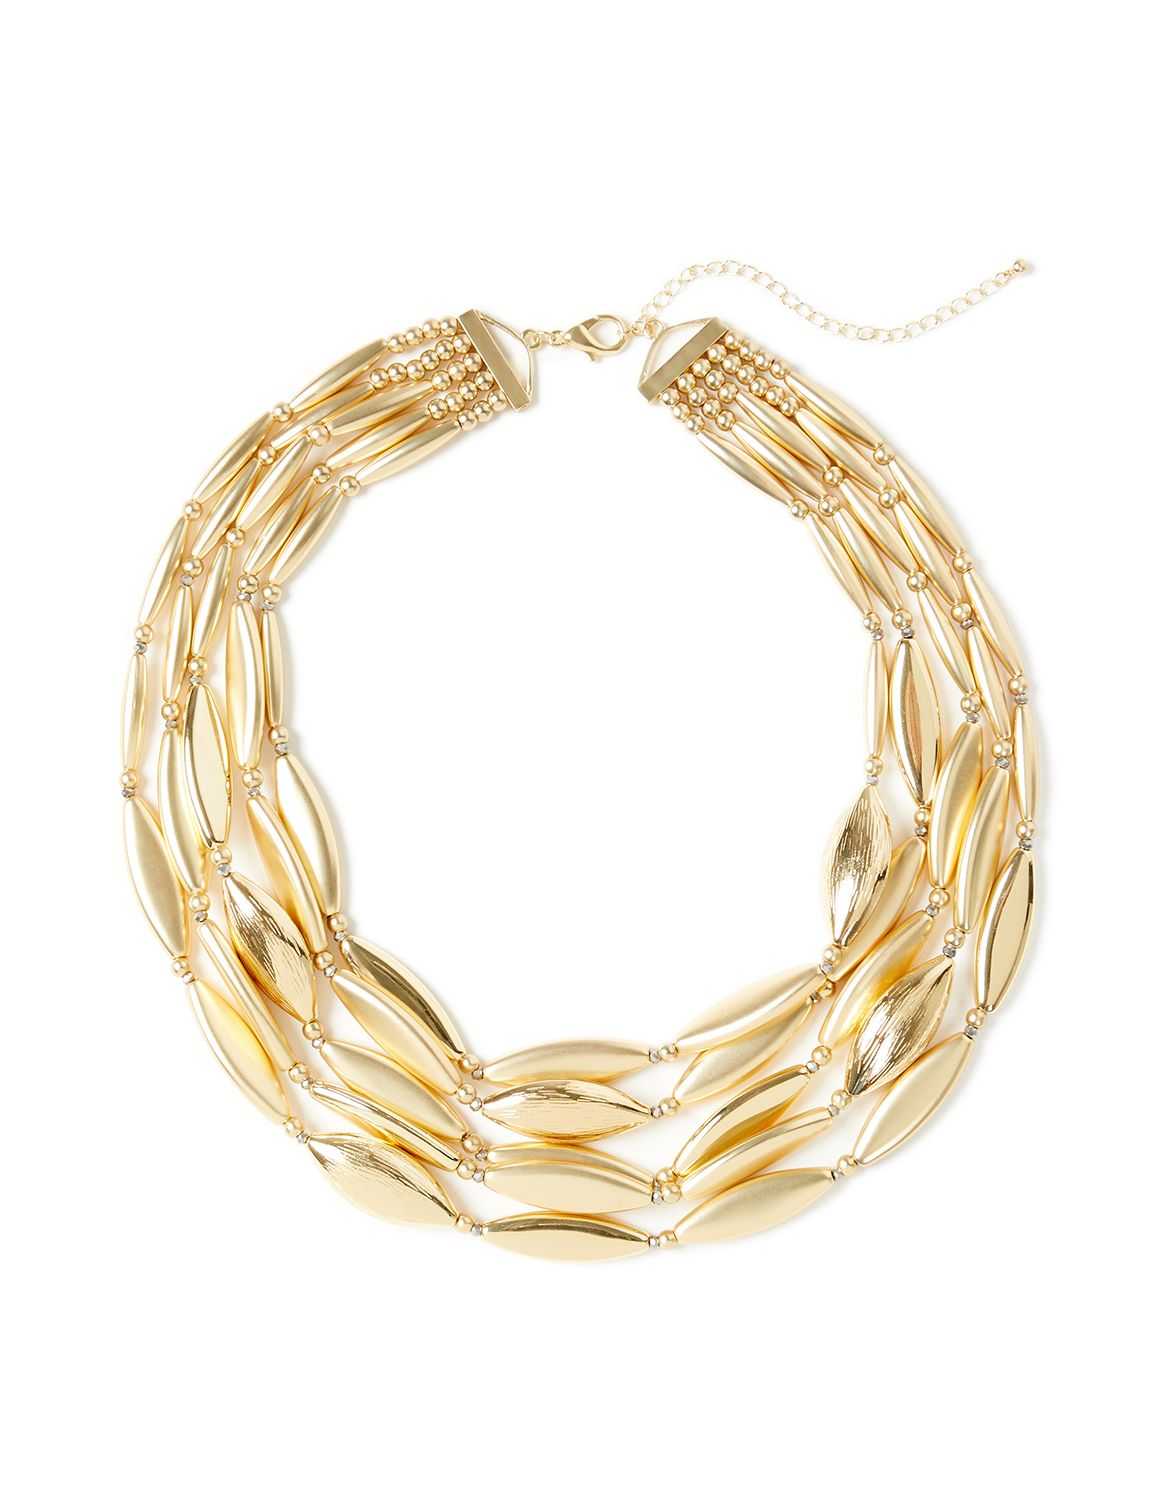 Almond Cluster Necklace NBF Mid 5row smooth/text almond NK MP-300097198